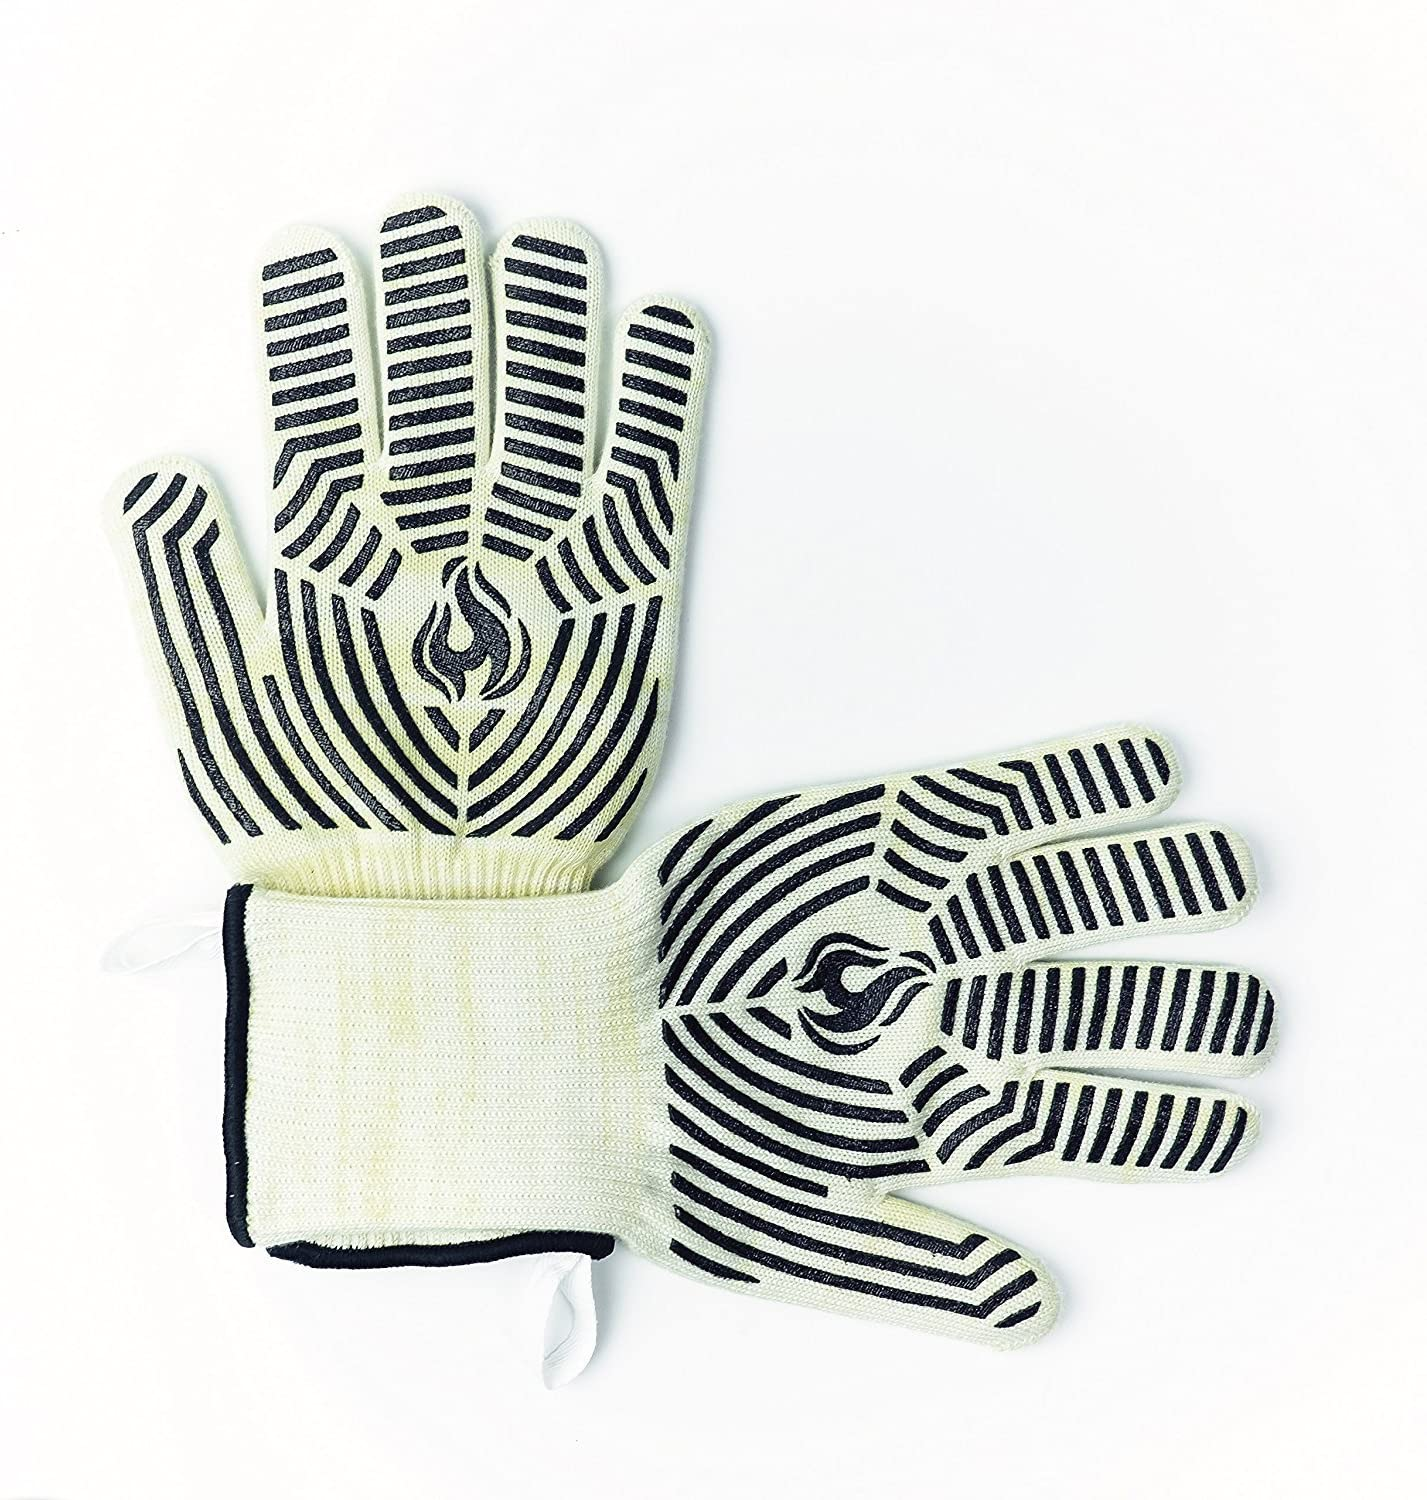 """Either Or Kitchen 932℉ Heat Resistant Oven Gloves, With 5"""" Extended Cuff For Forearm Protection, Cut Resistant Material, Oven Mitts, Pot Holders, Grill Gloves, Premium Quality"""